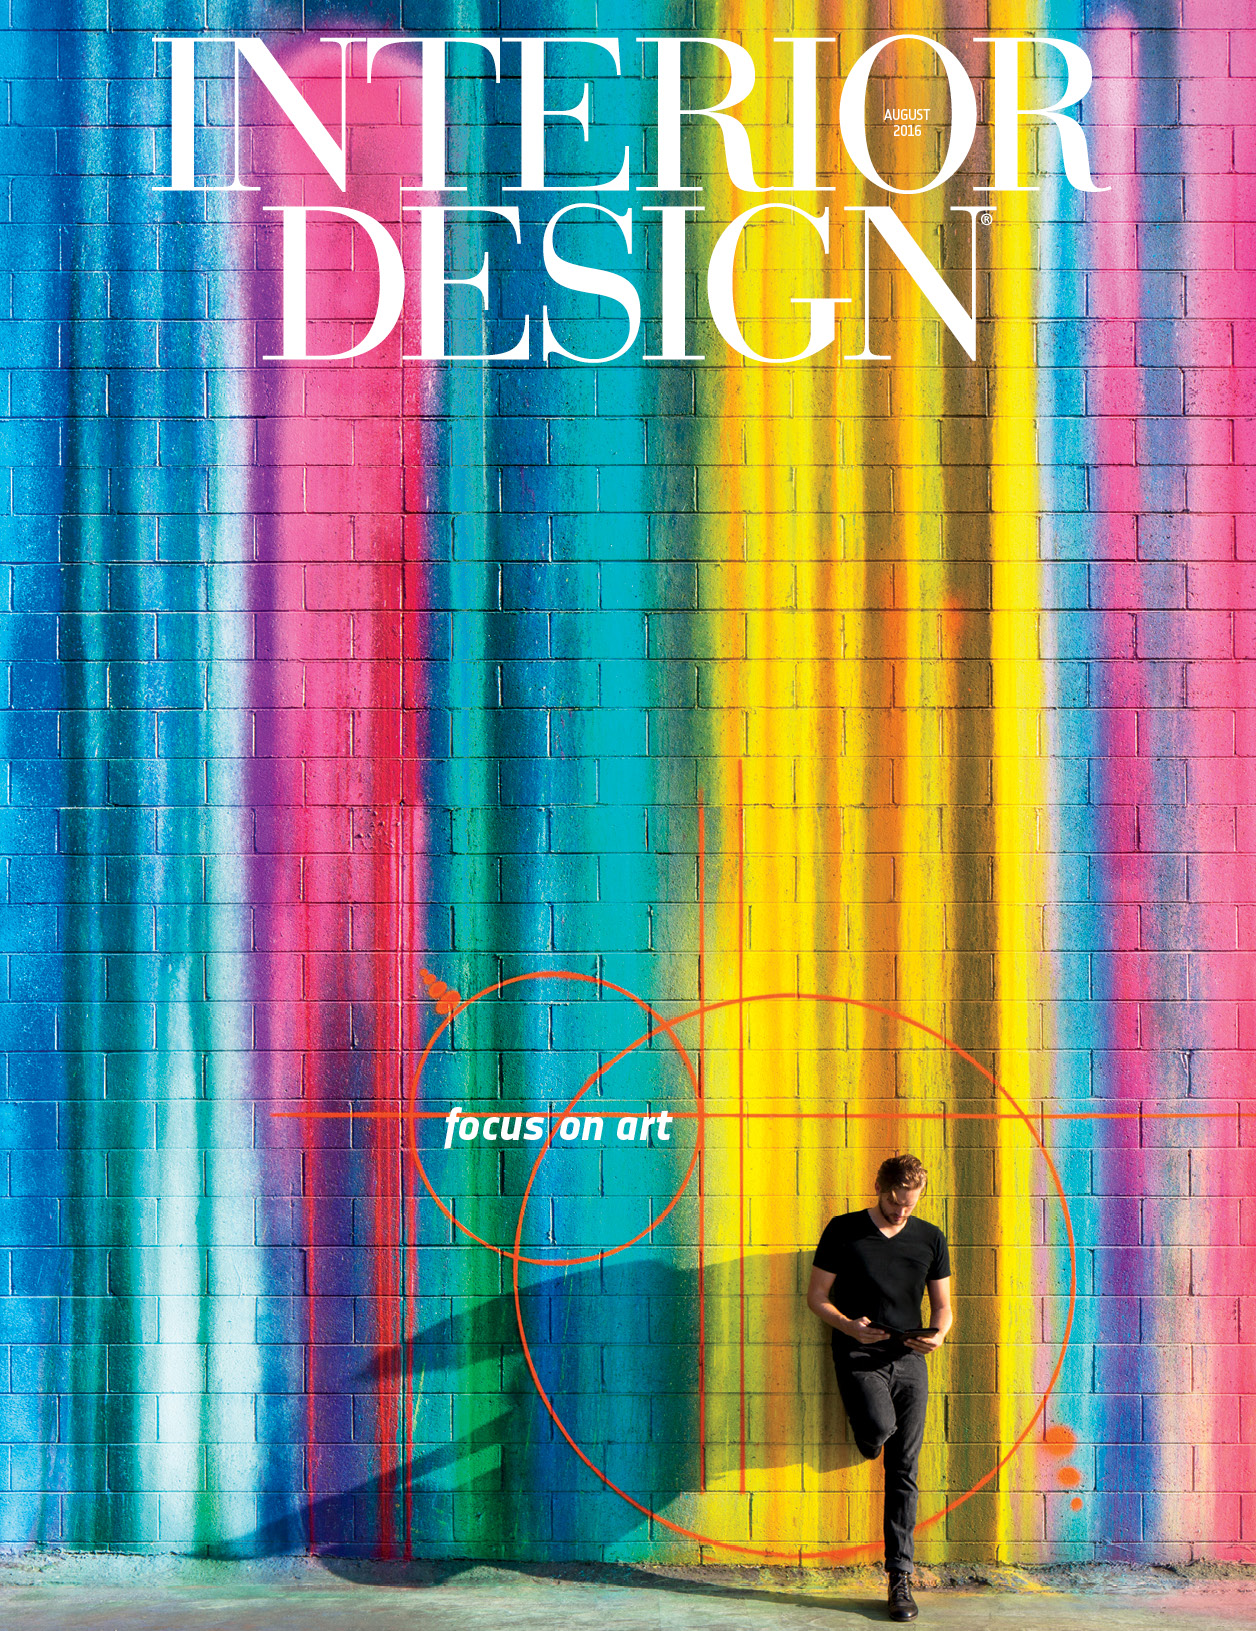 Interior design august 2016 for Graphic design interior design